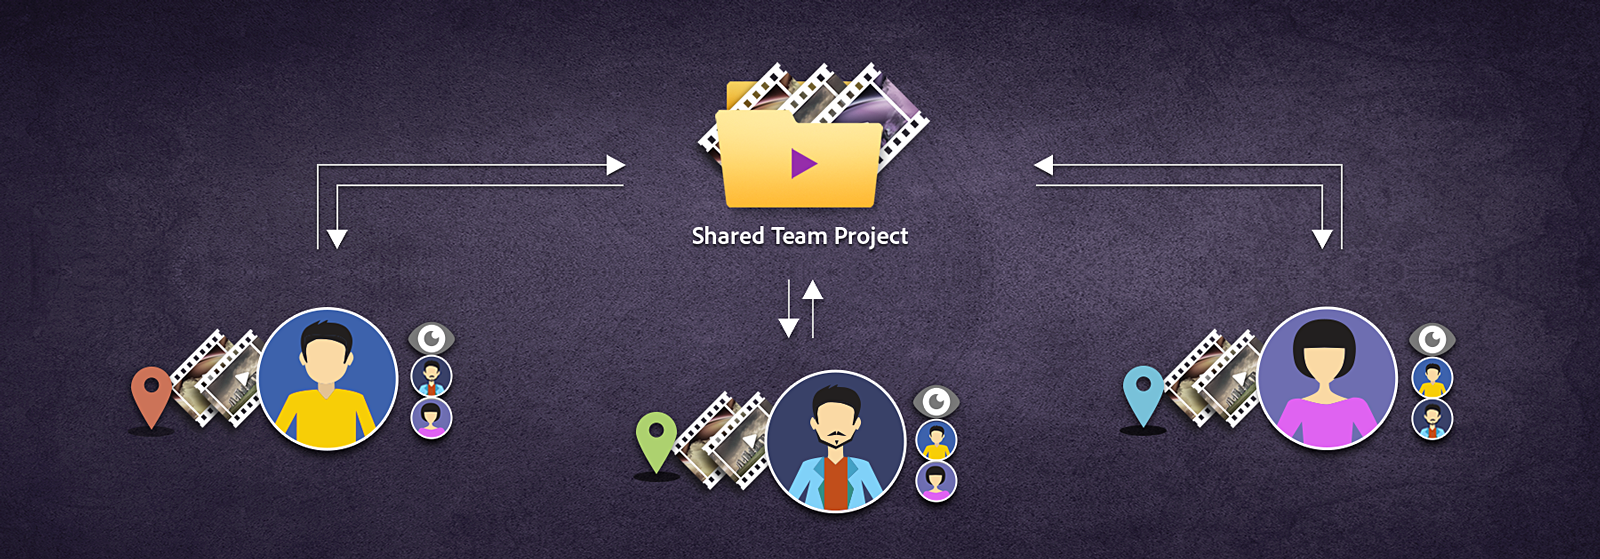 Team Projects support